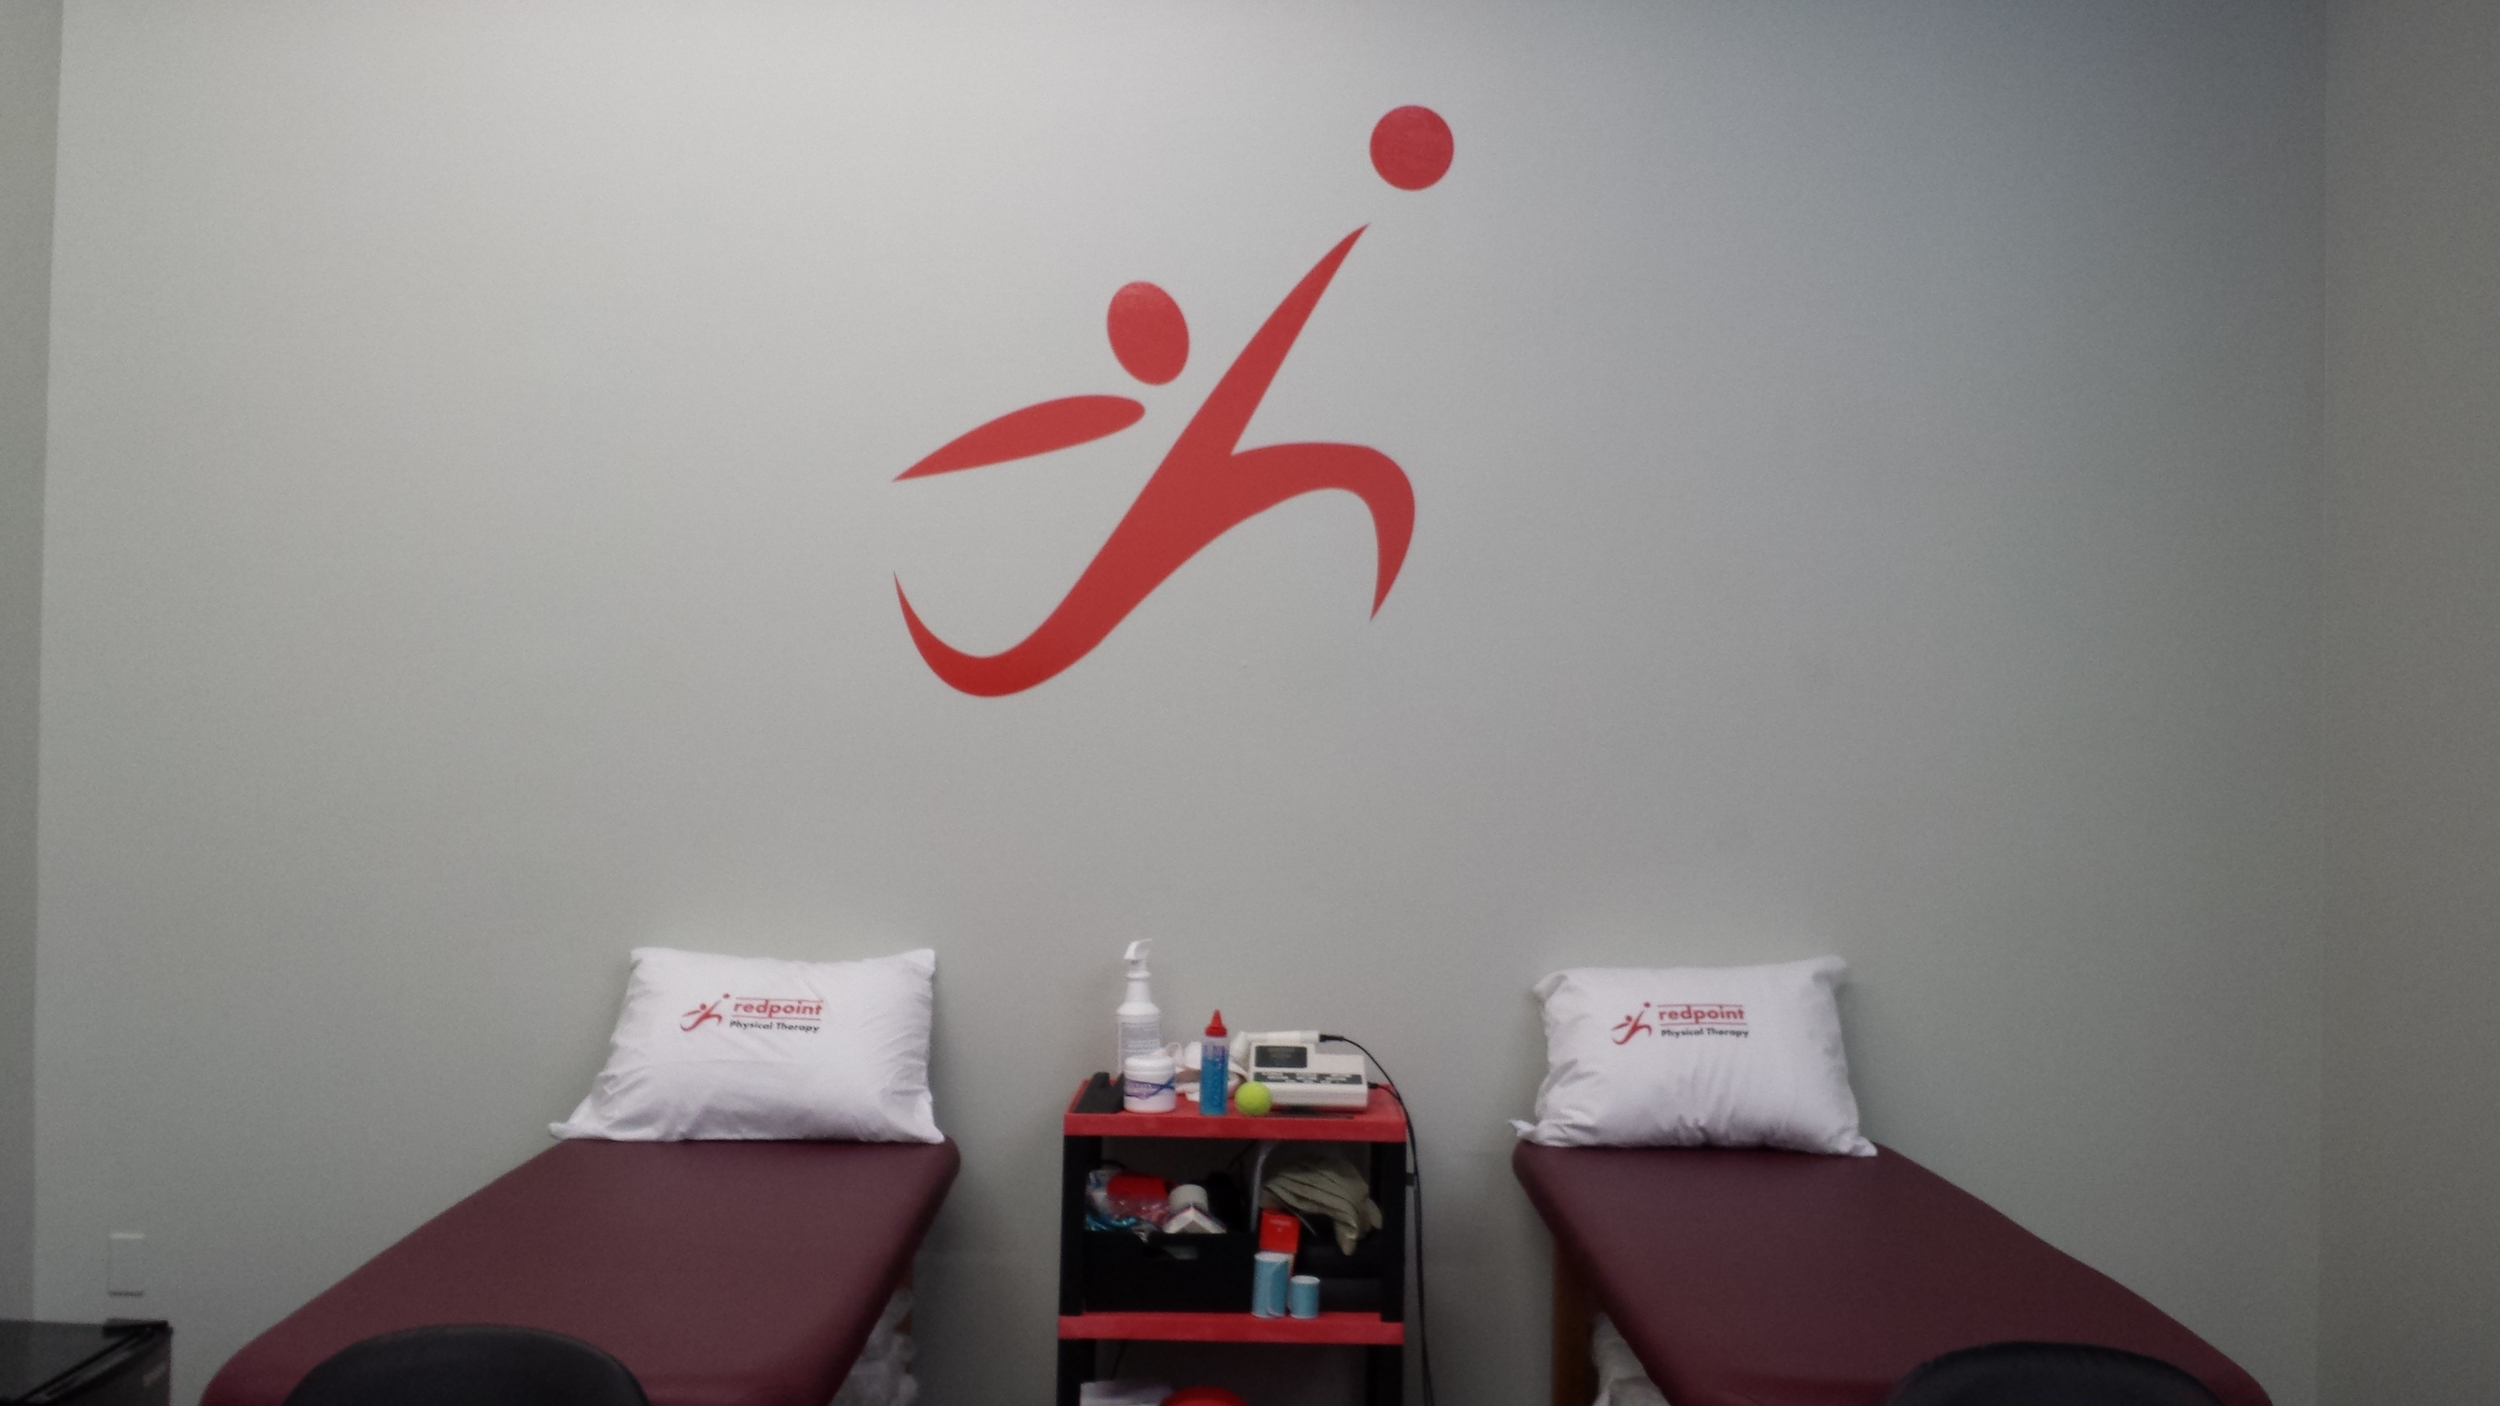 This logo symbolizes my passion to help you achieve superior results. Redpoint Physical Therapy will take you to a new level of rehabilitation!